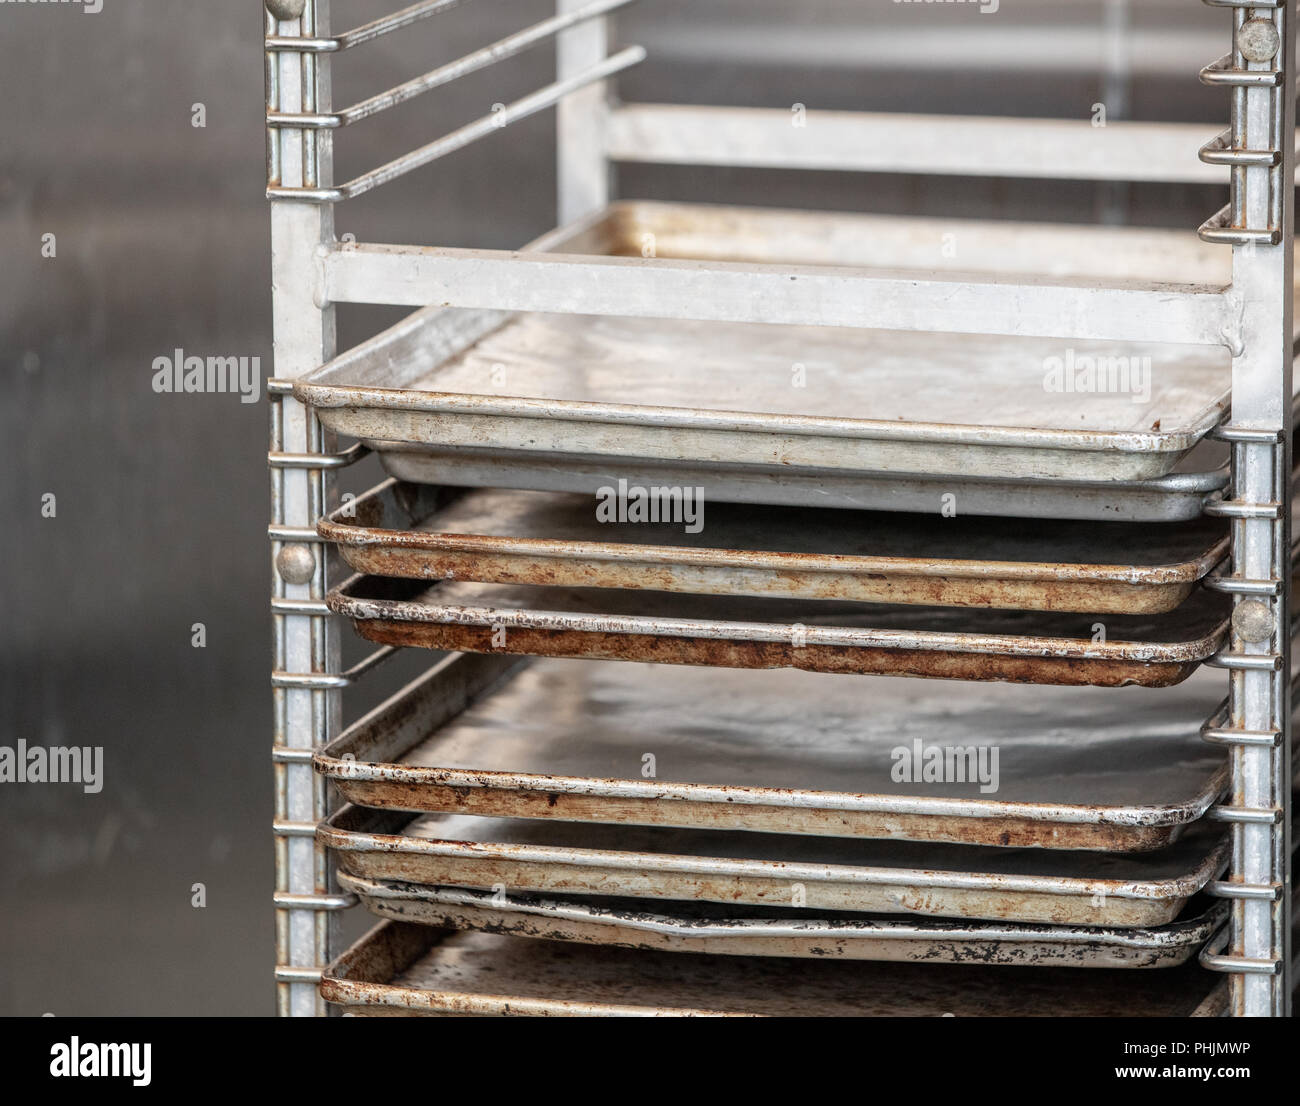 rack holding sheet pans in a commercial kitchen - Stock Image